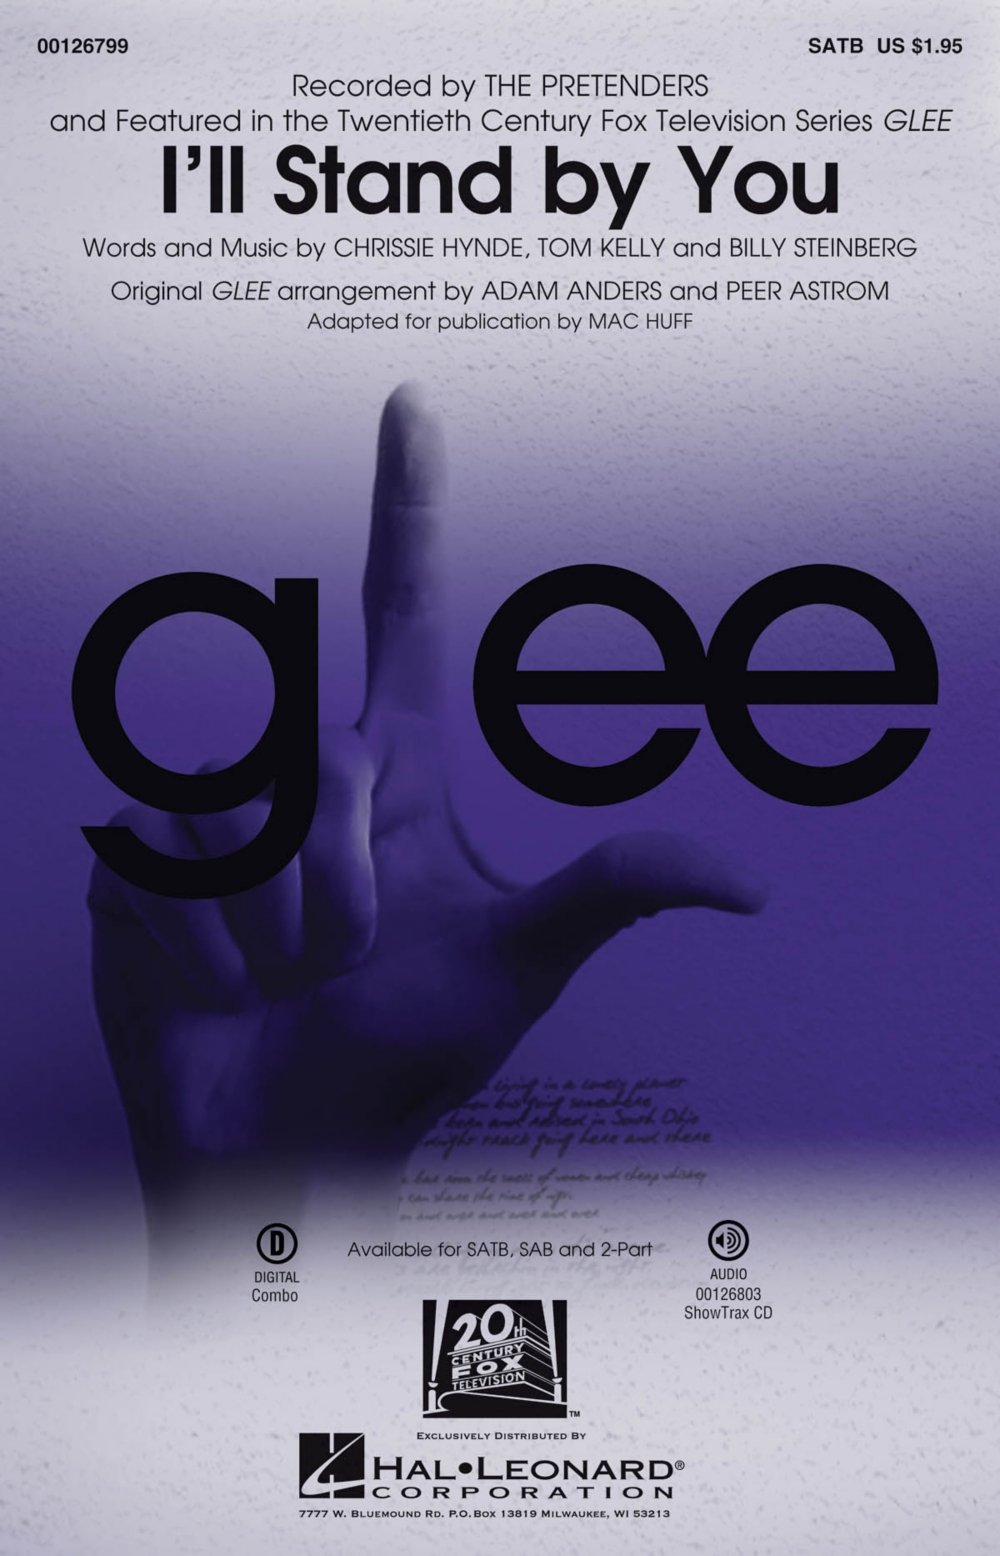 hal leonard ill stand by you satb by glee cast tv series arranged by mac huff